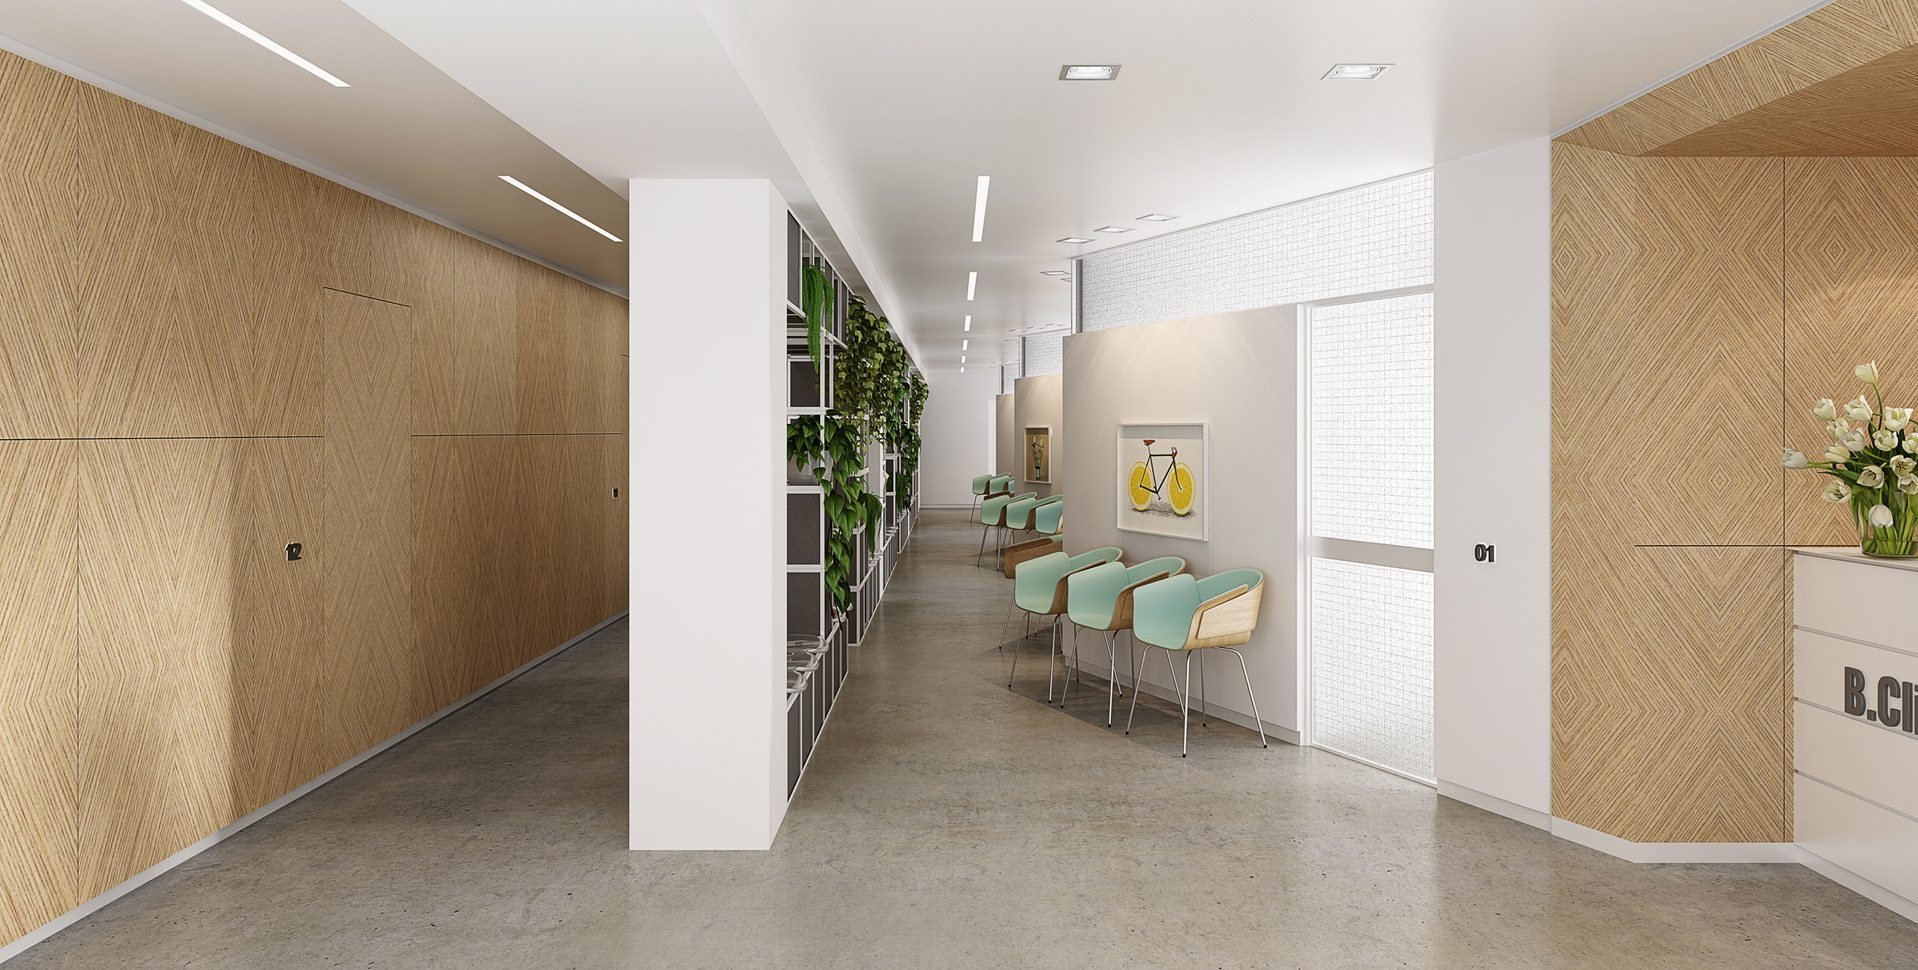 Architectural Visualization: Clinic, Entrance View